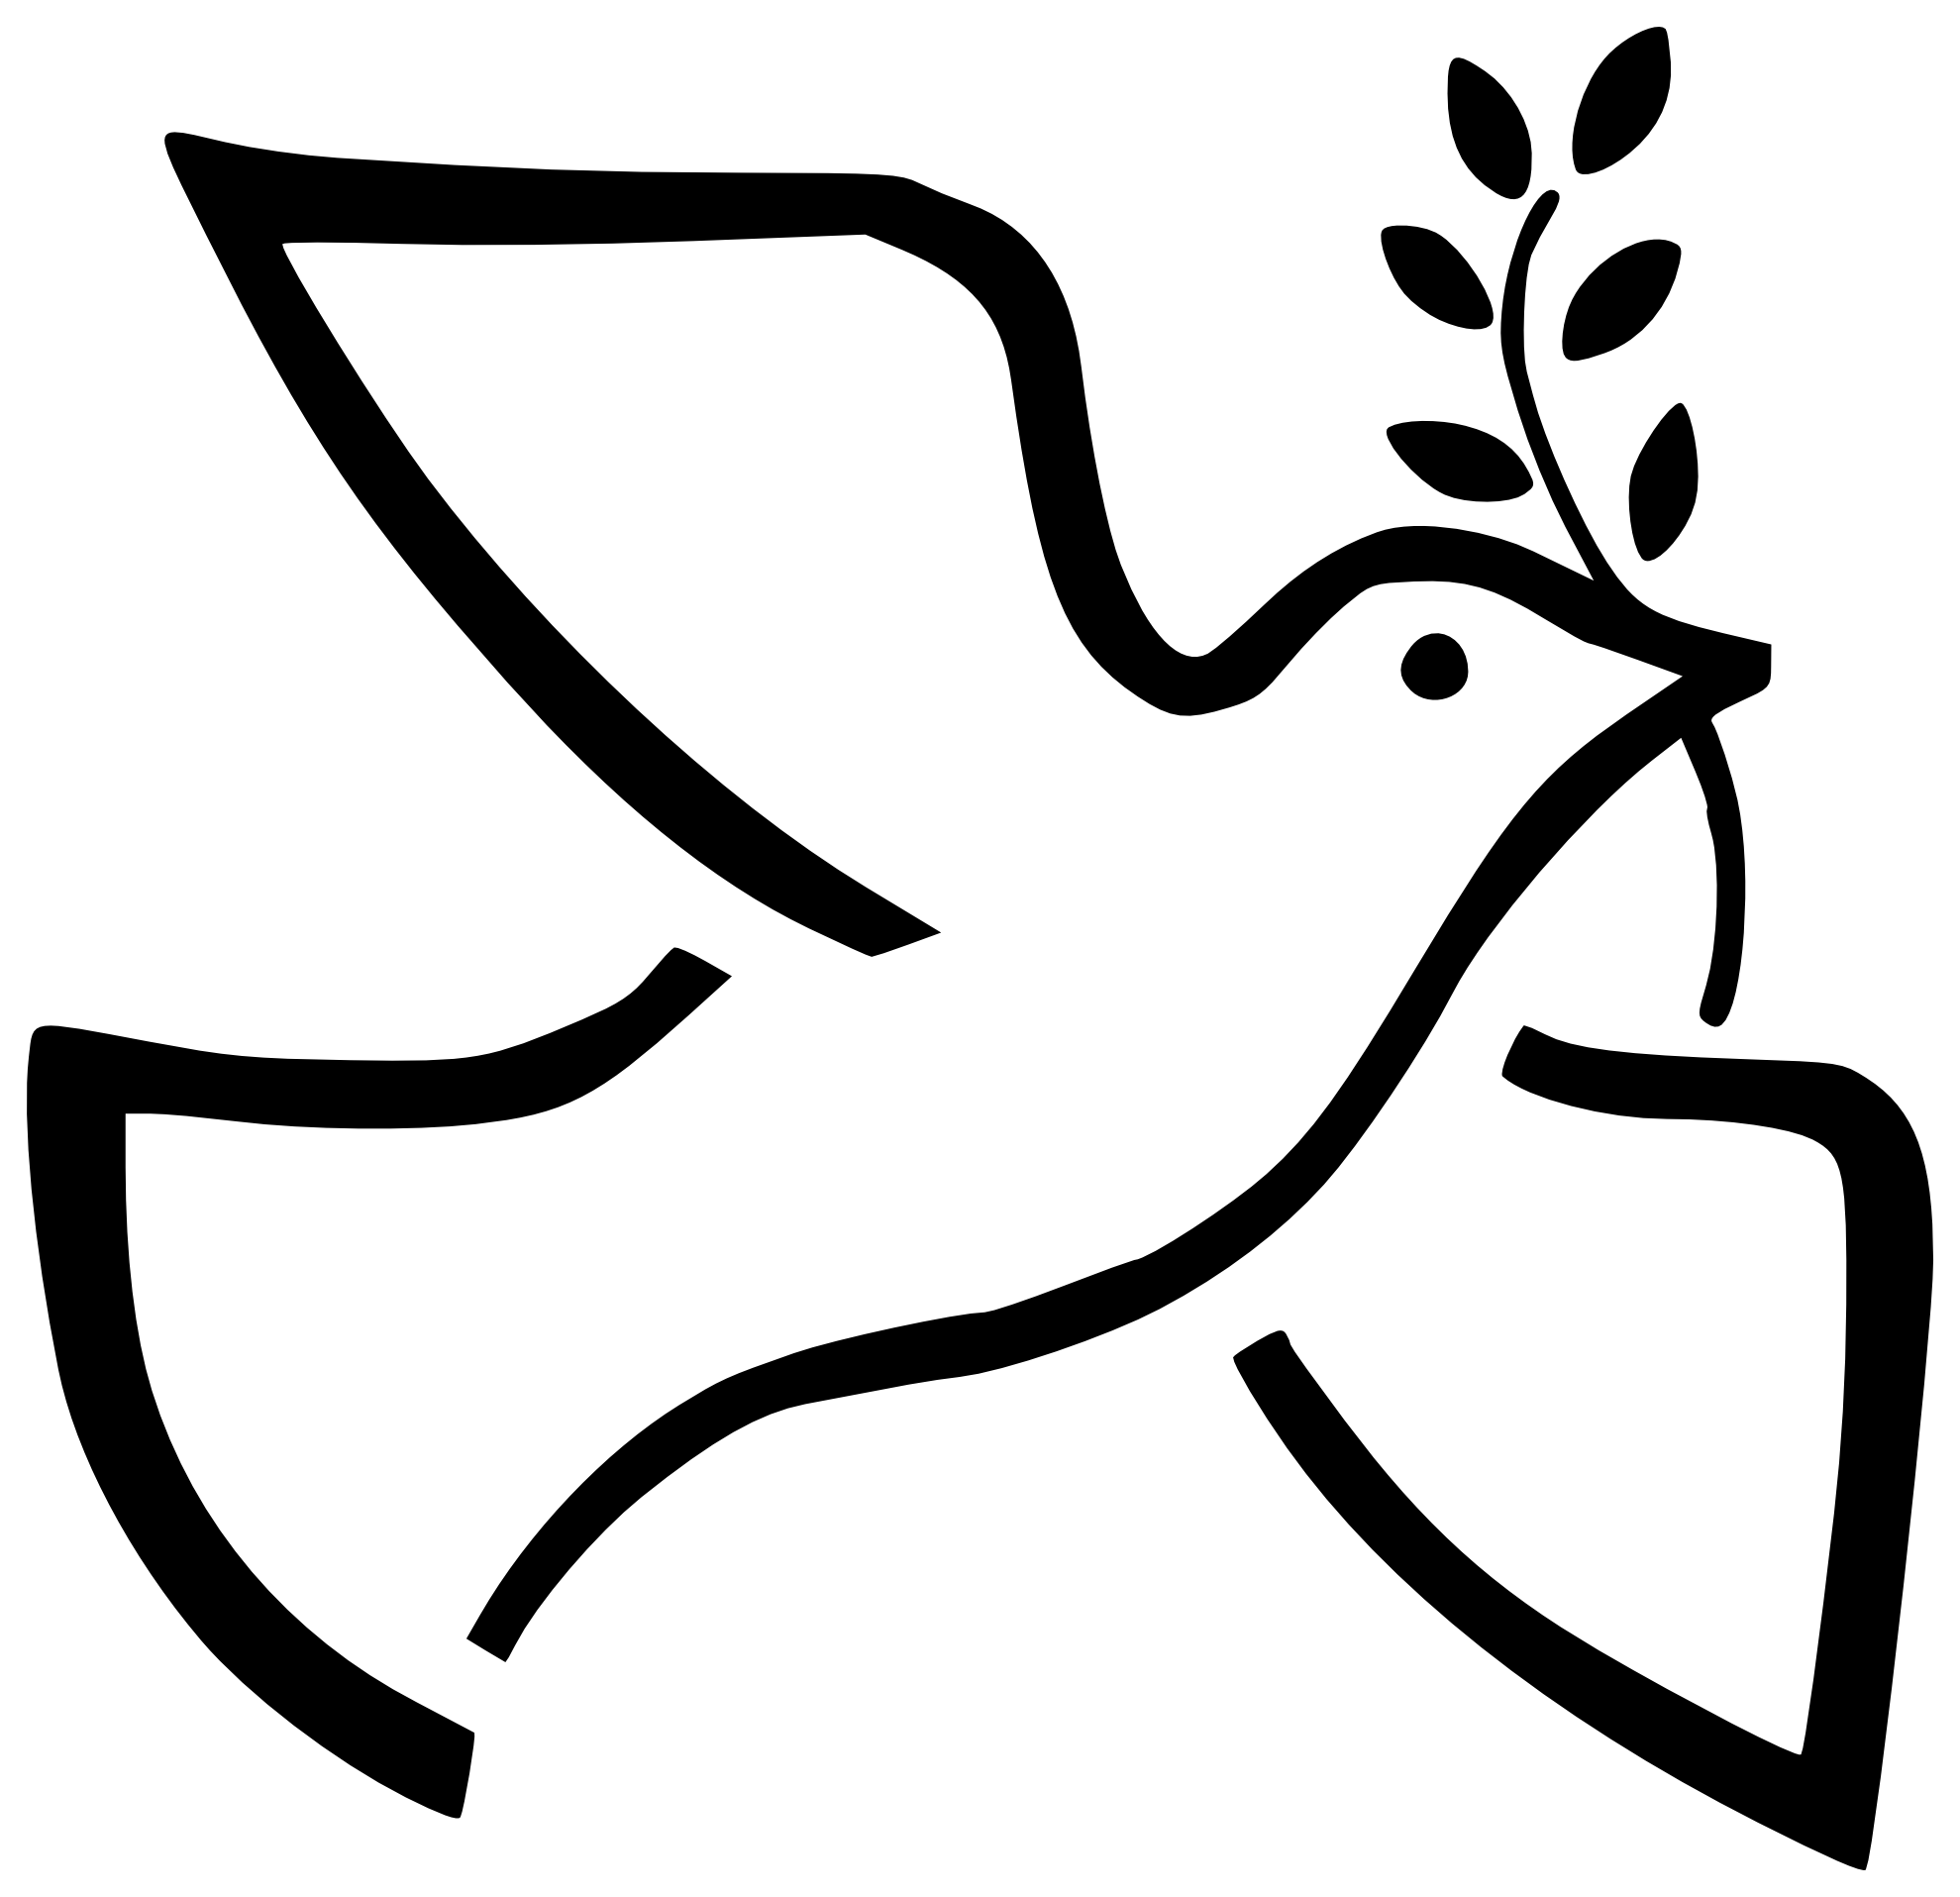 vector doves dove outline